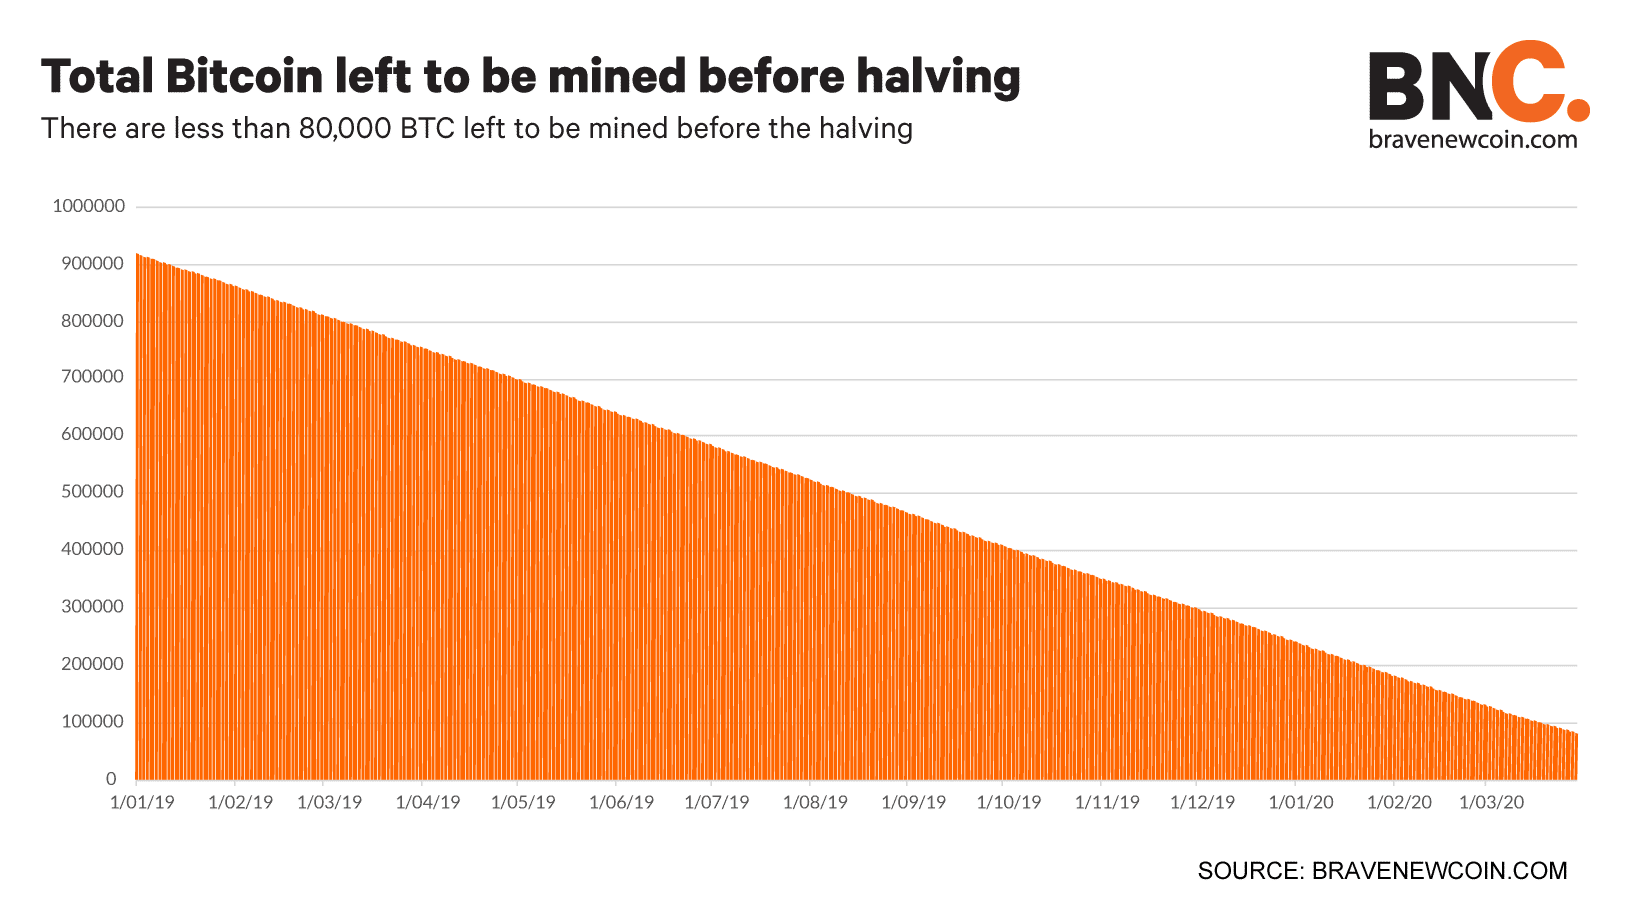 Total-Bitcoin-left-to-be-mined-before-halving (5)